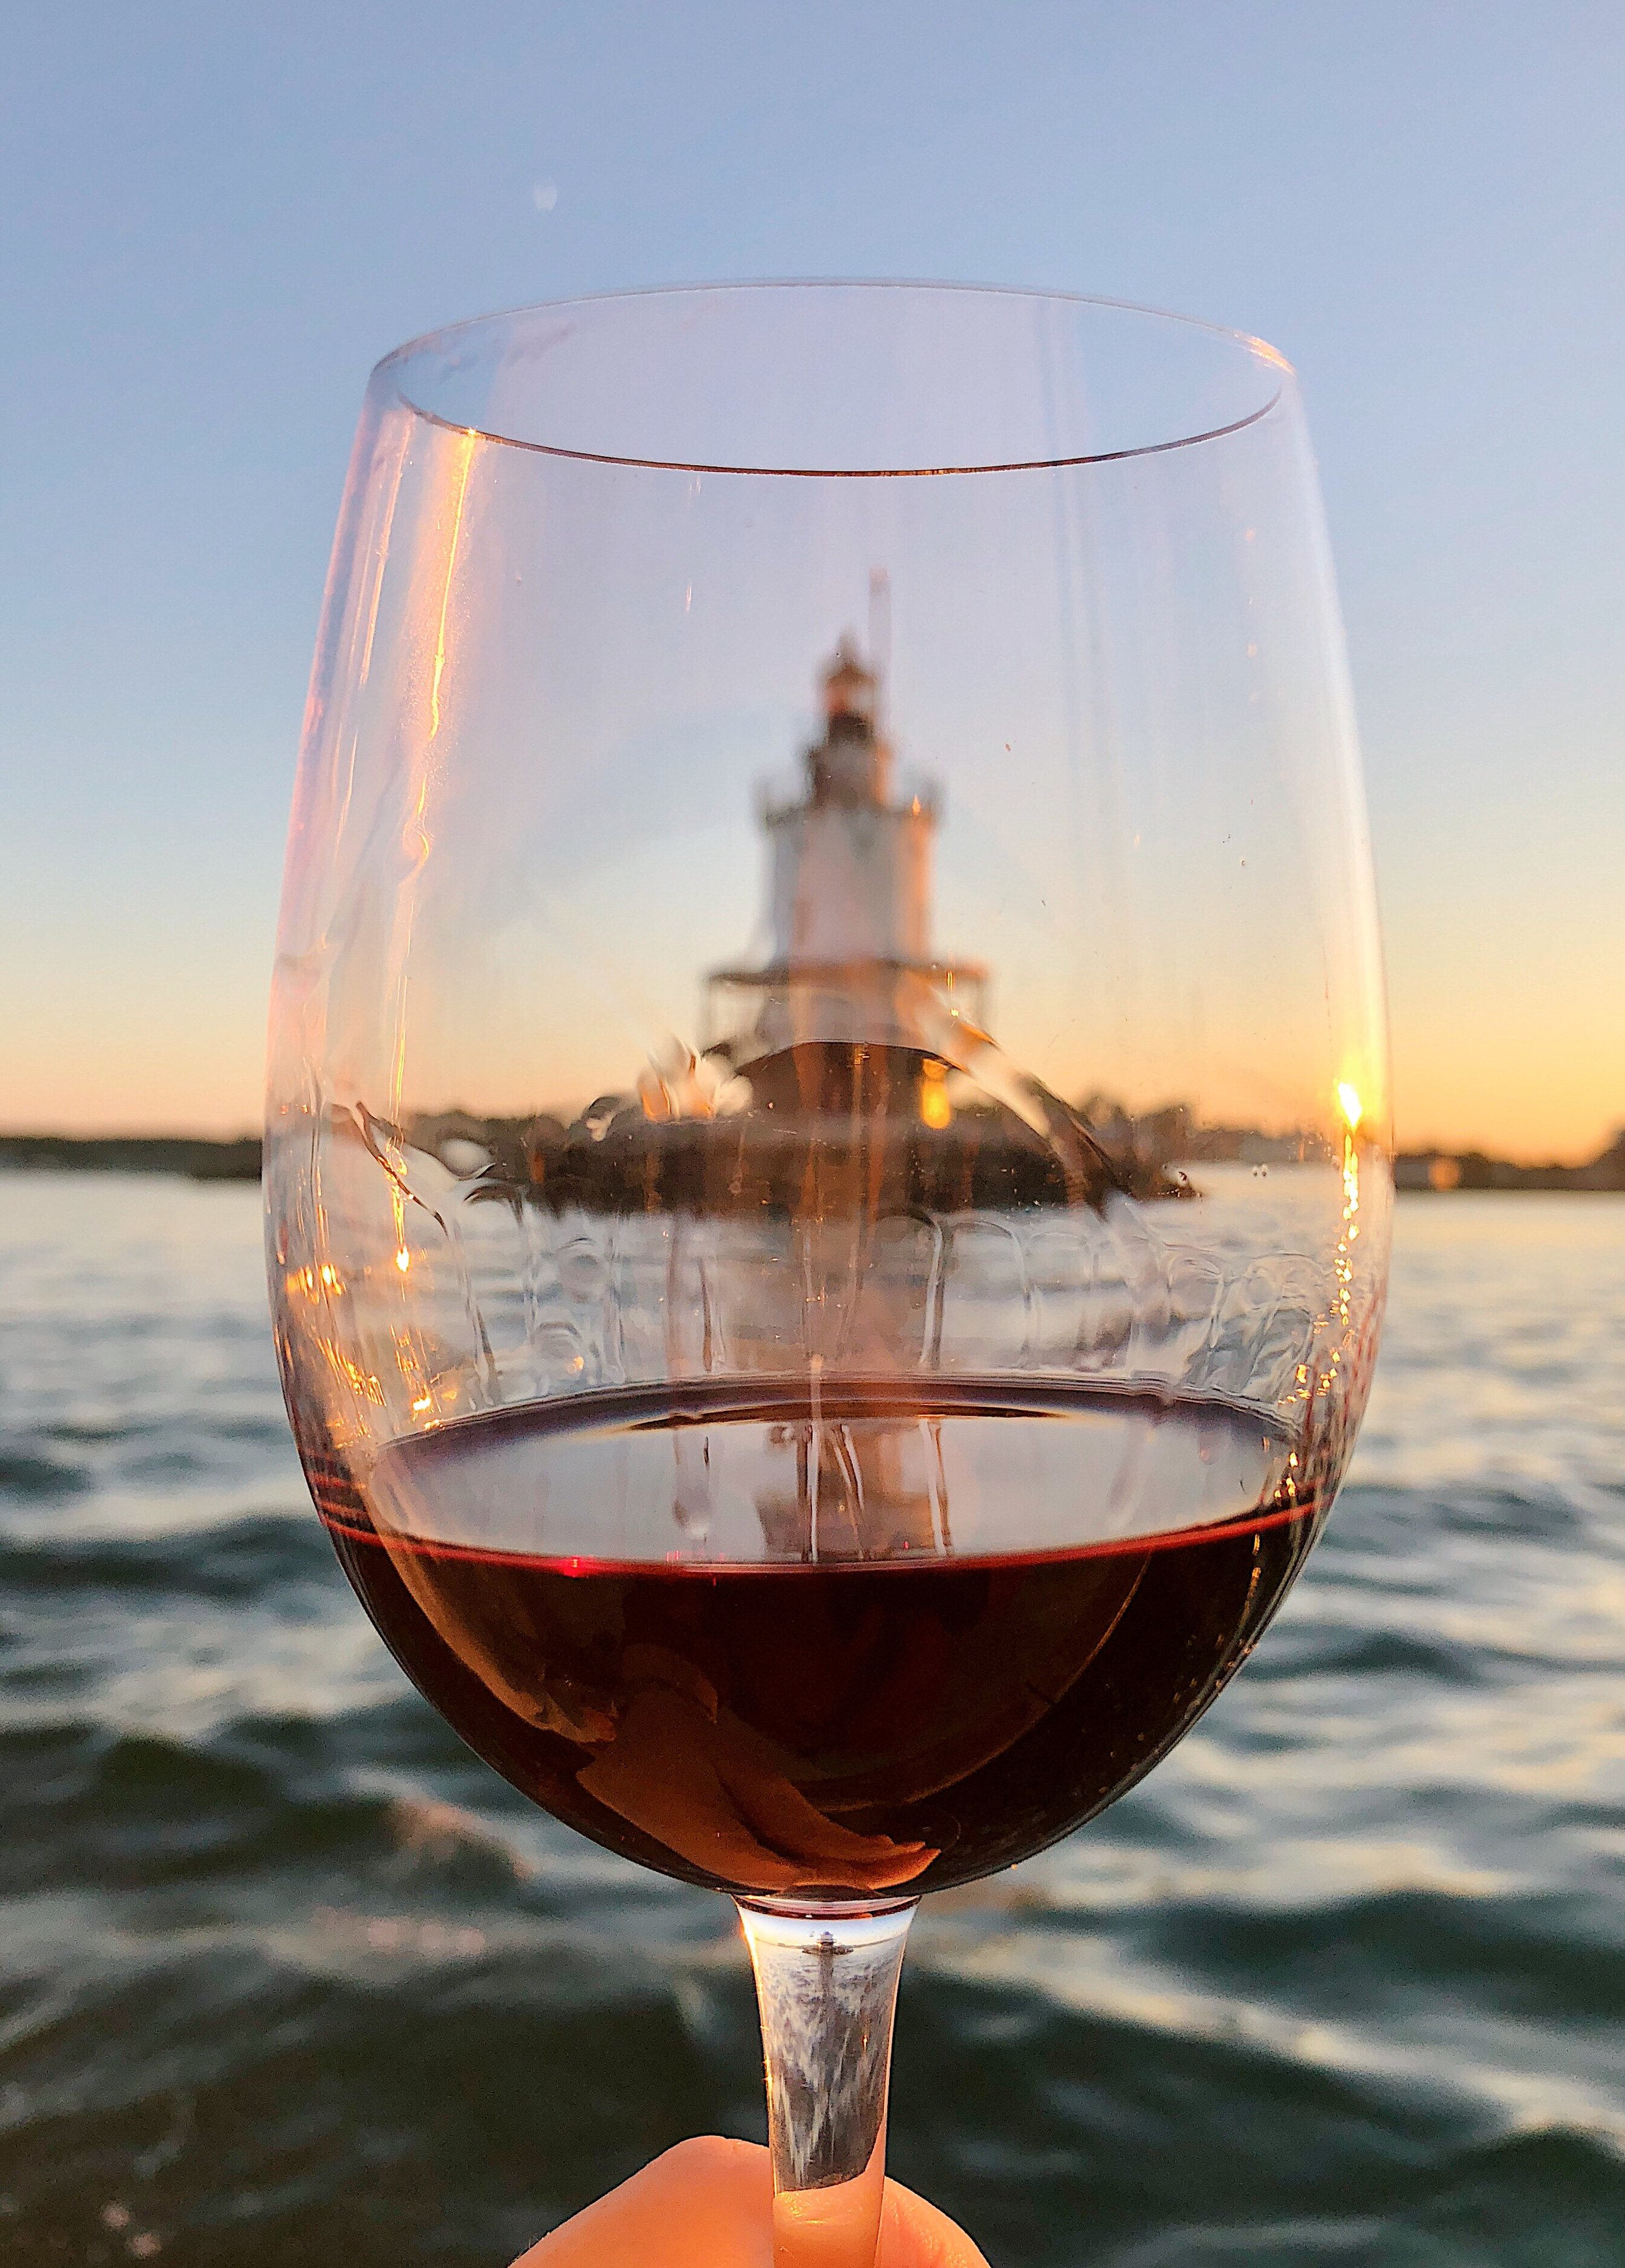 wine_wise_events_portland_maine_wine_sailwine_wise_events_portland_maine_wine_sailwine_sail_winewise_portlandmaine_lighthouse.jpg